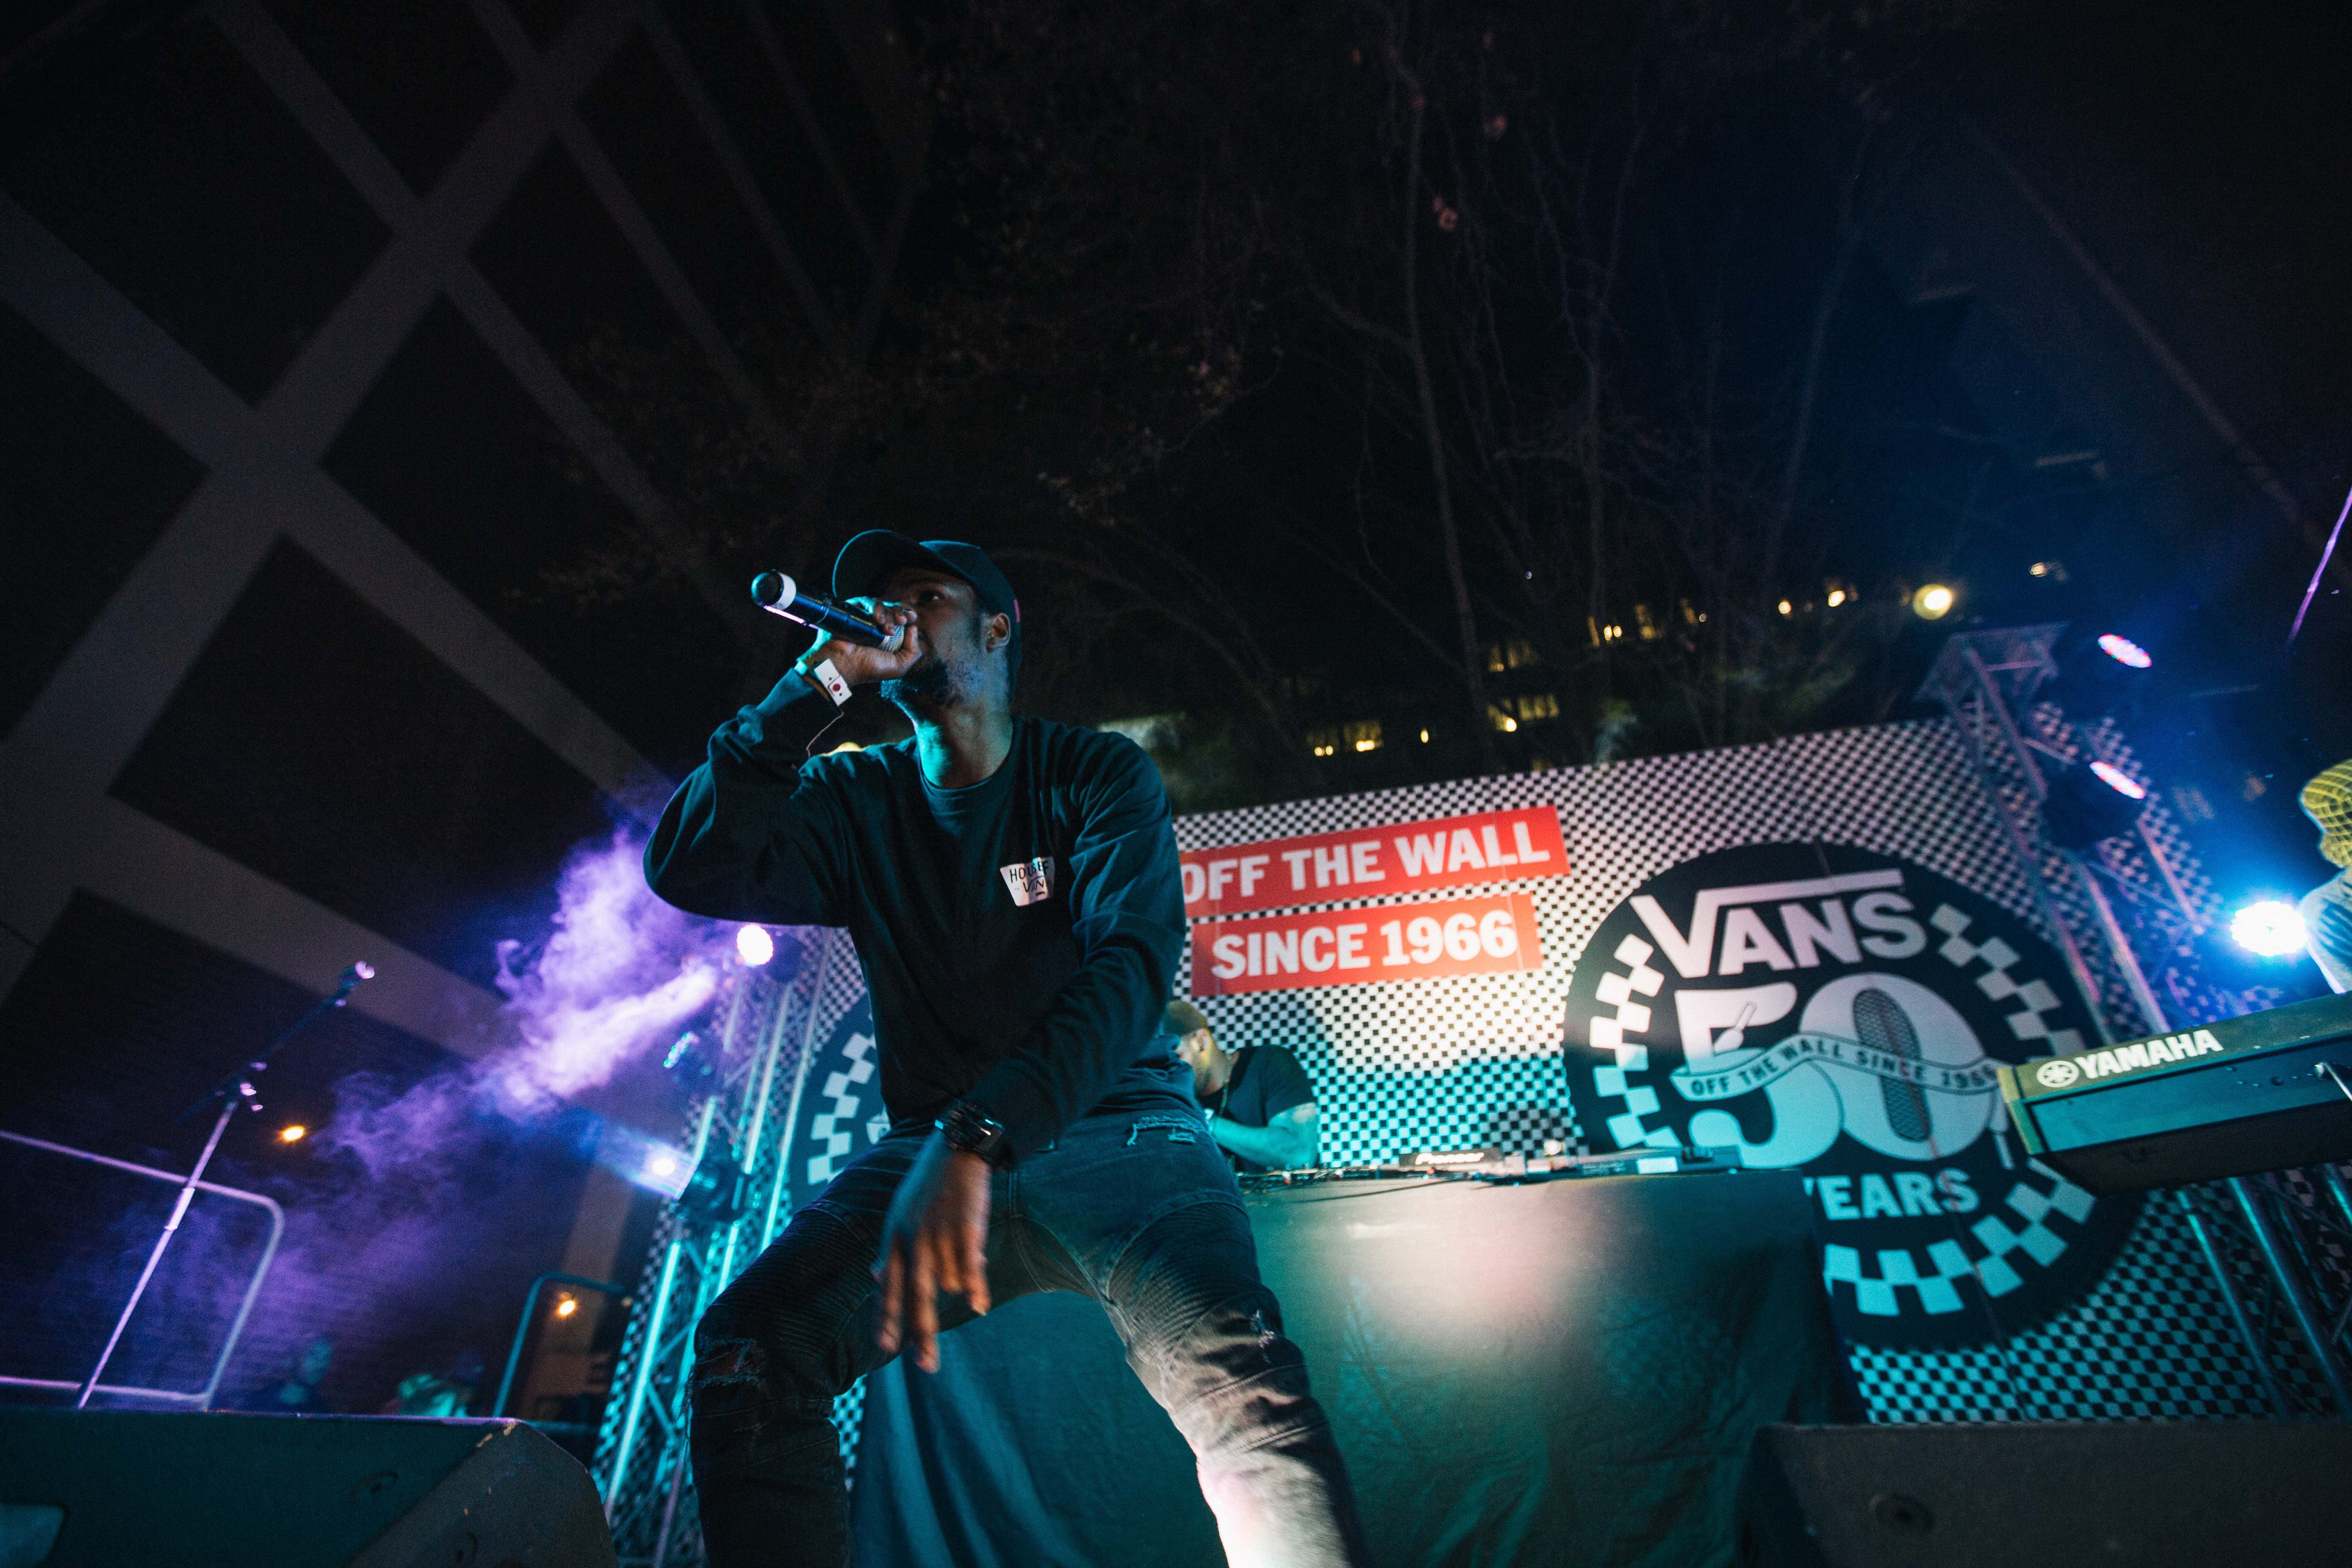 KiD X performing at House of Vans Johannesburg